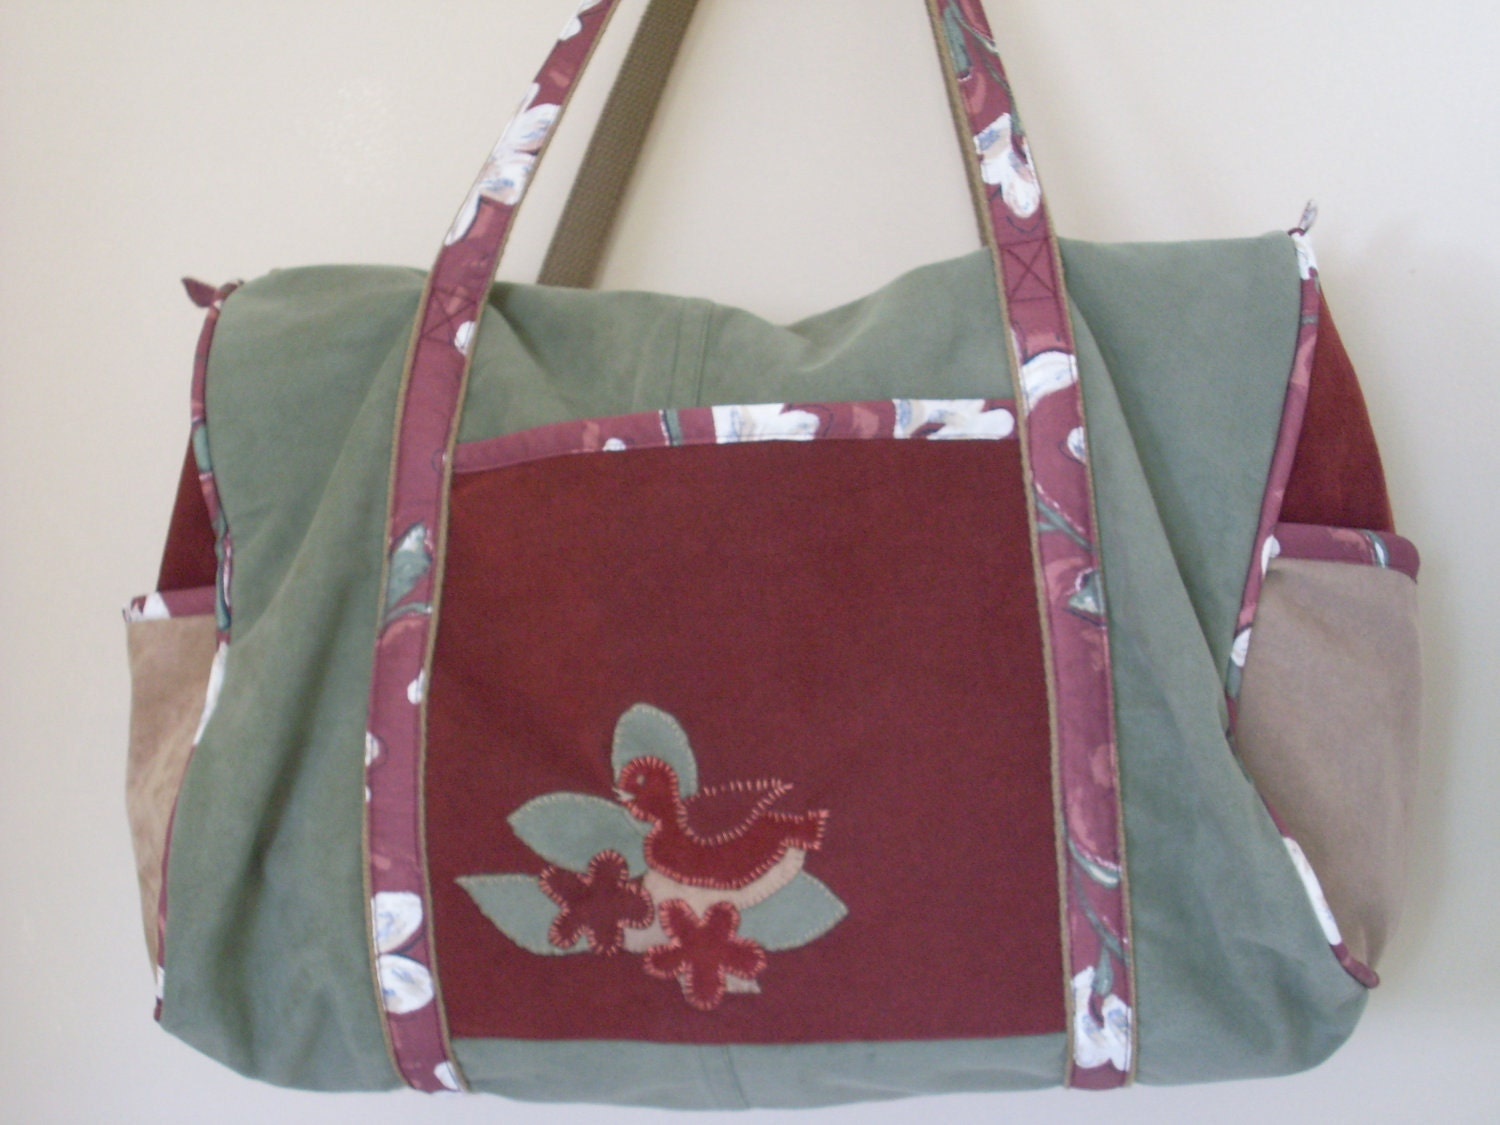 Upcycled Ultra Suede Overnight Bag with Bird Applique